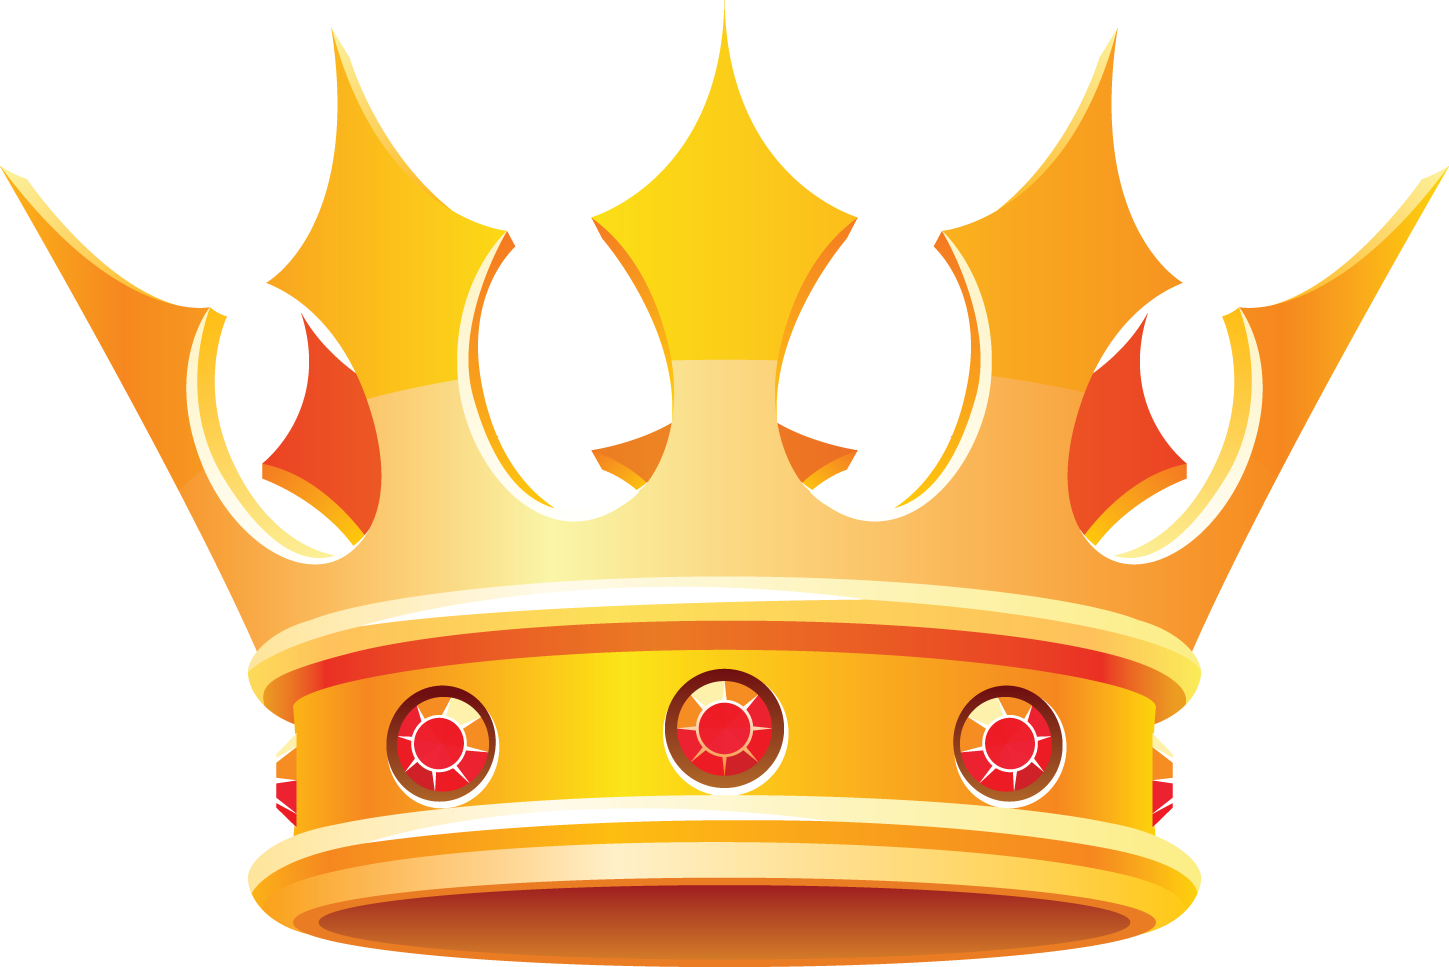 queen crown clipart at getdrawings com free for personal use queen rh getdrawings com clipart king crown king crown clipart png